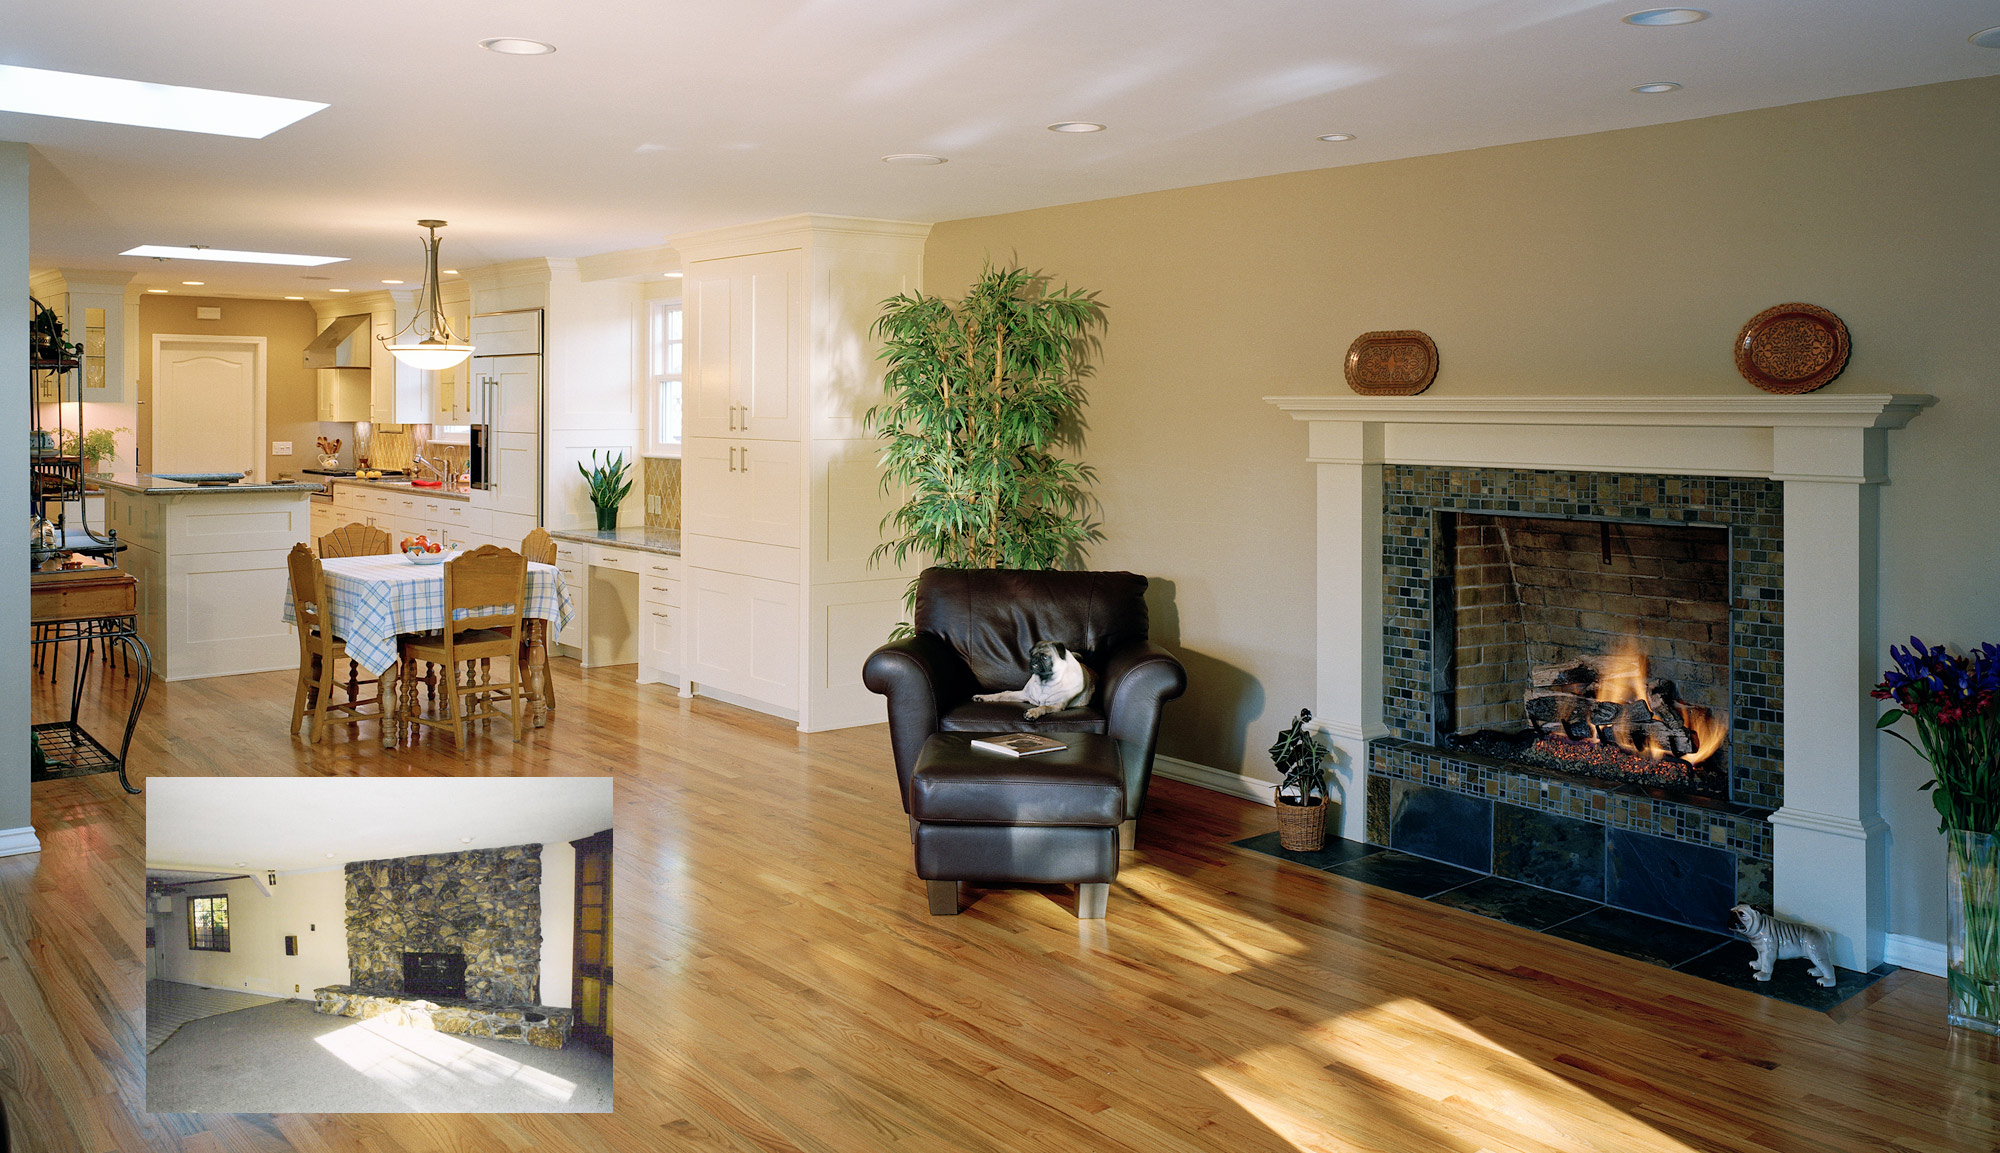 fireplace and great room remodel before and after.jpg